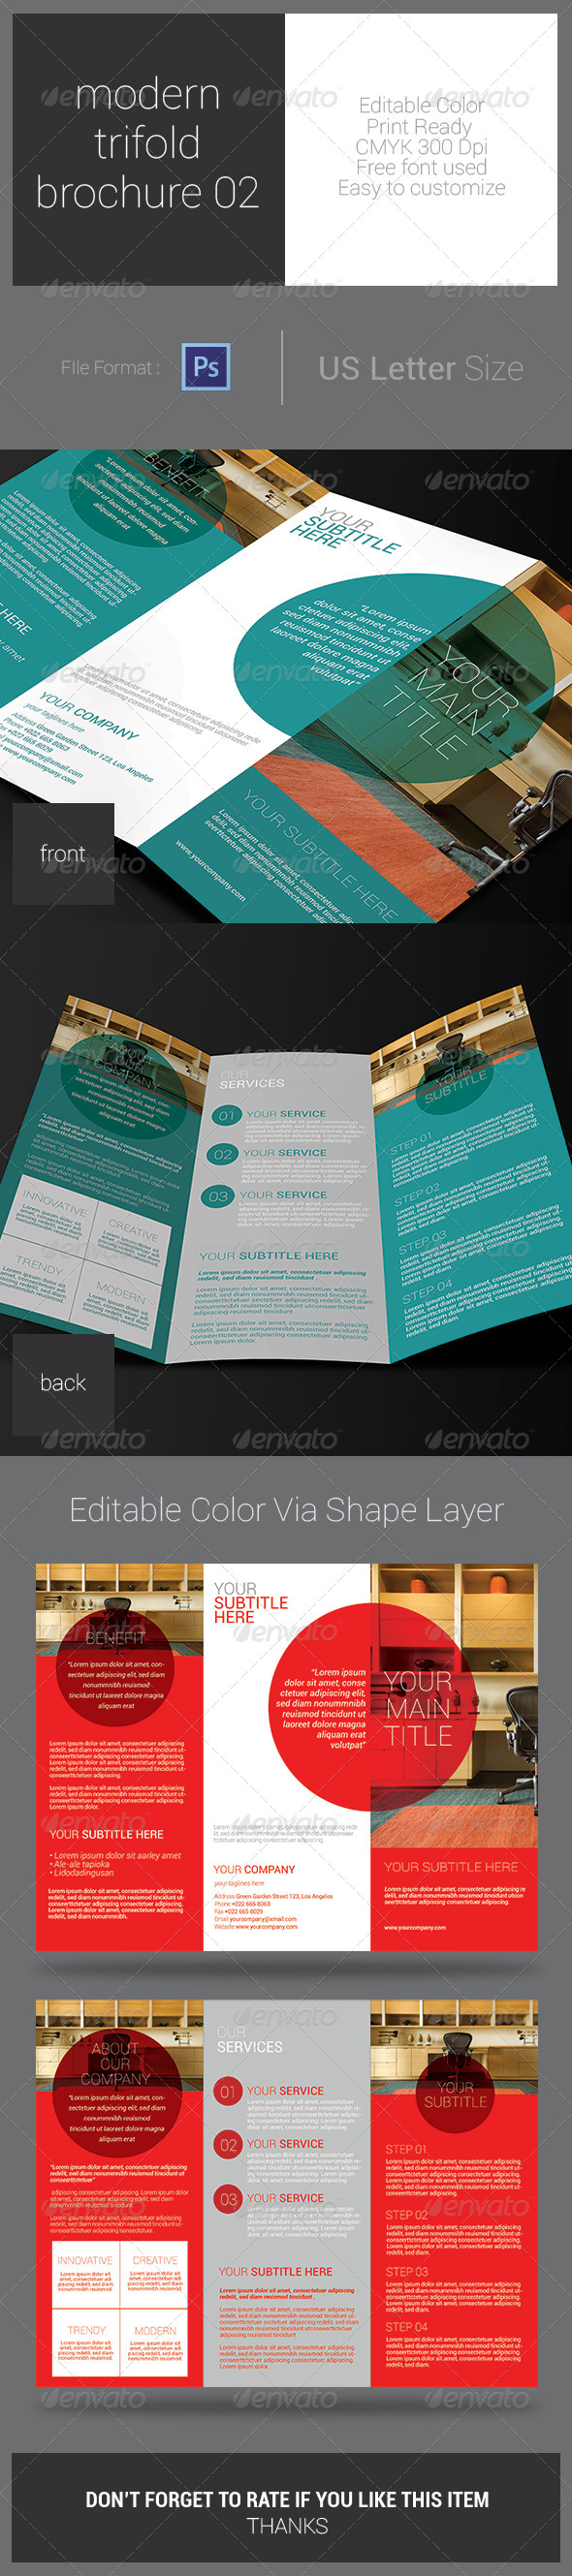 GraphicRiver Modern Trifold Brouchure 02 7805959